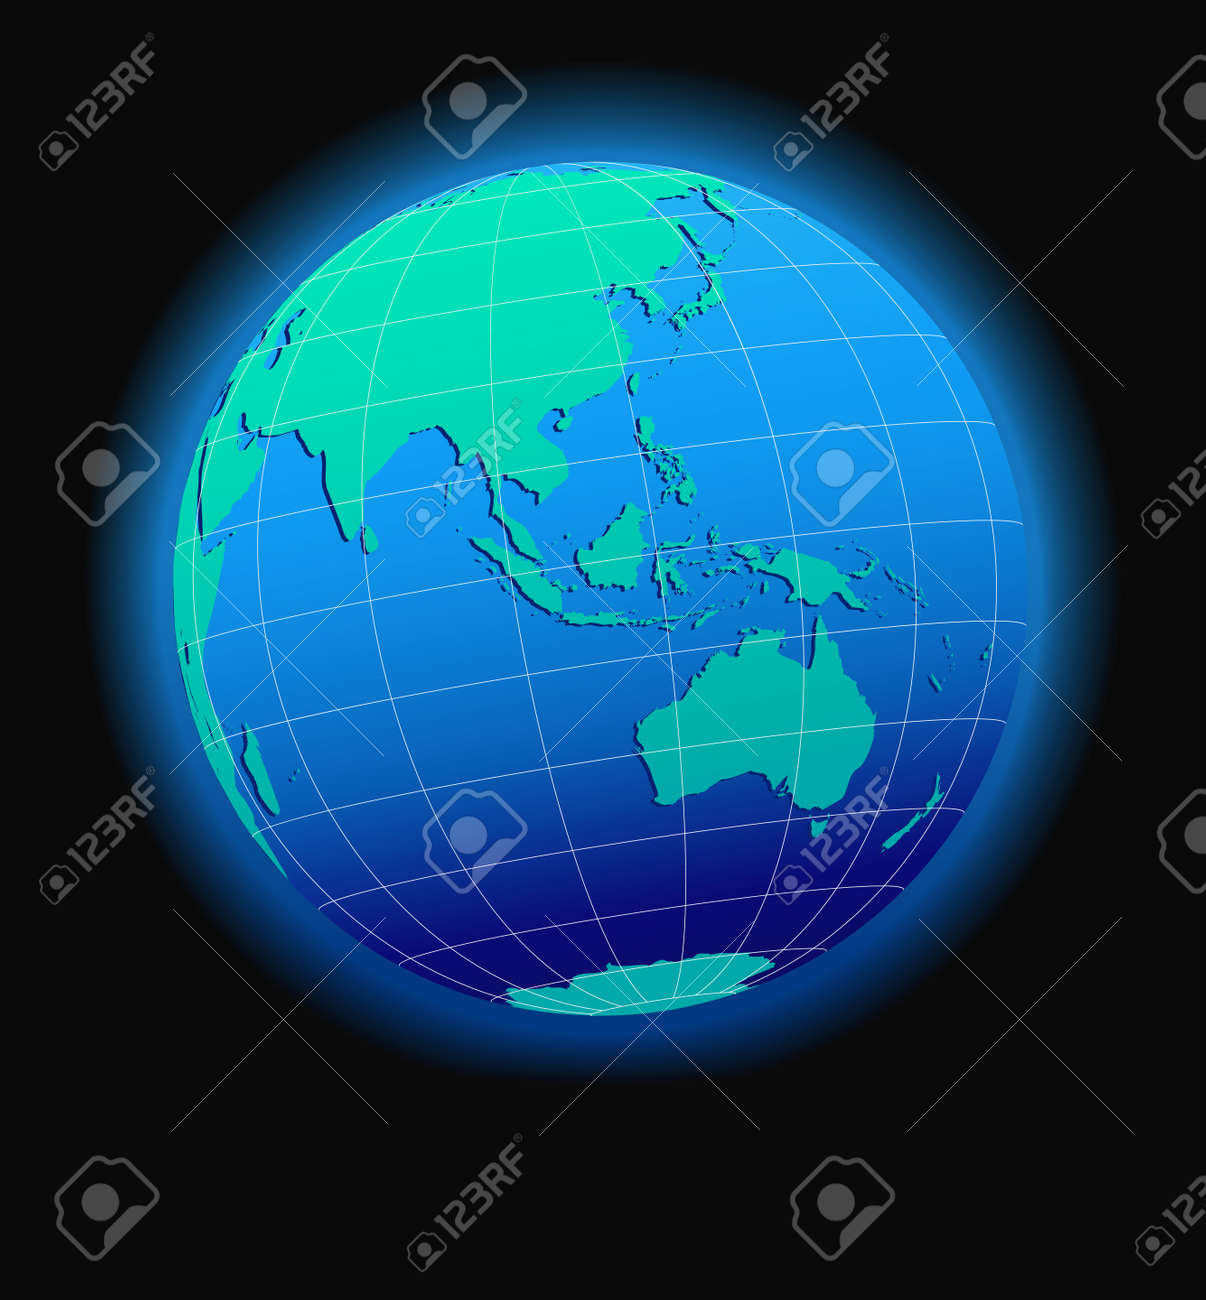 Asia And Australia, Global World In Space - Map Icon Of The World ...